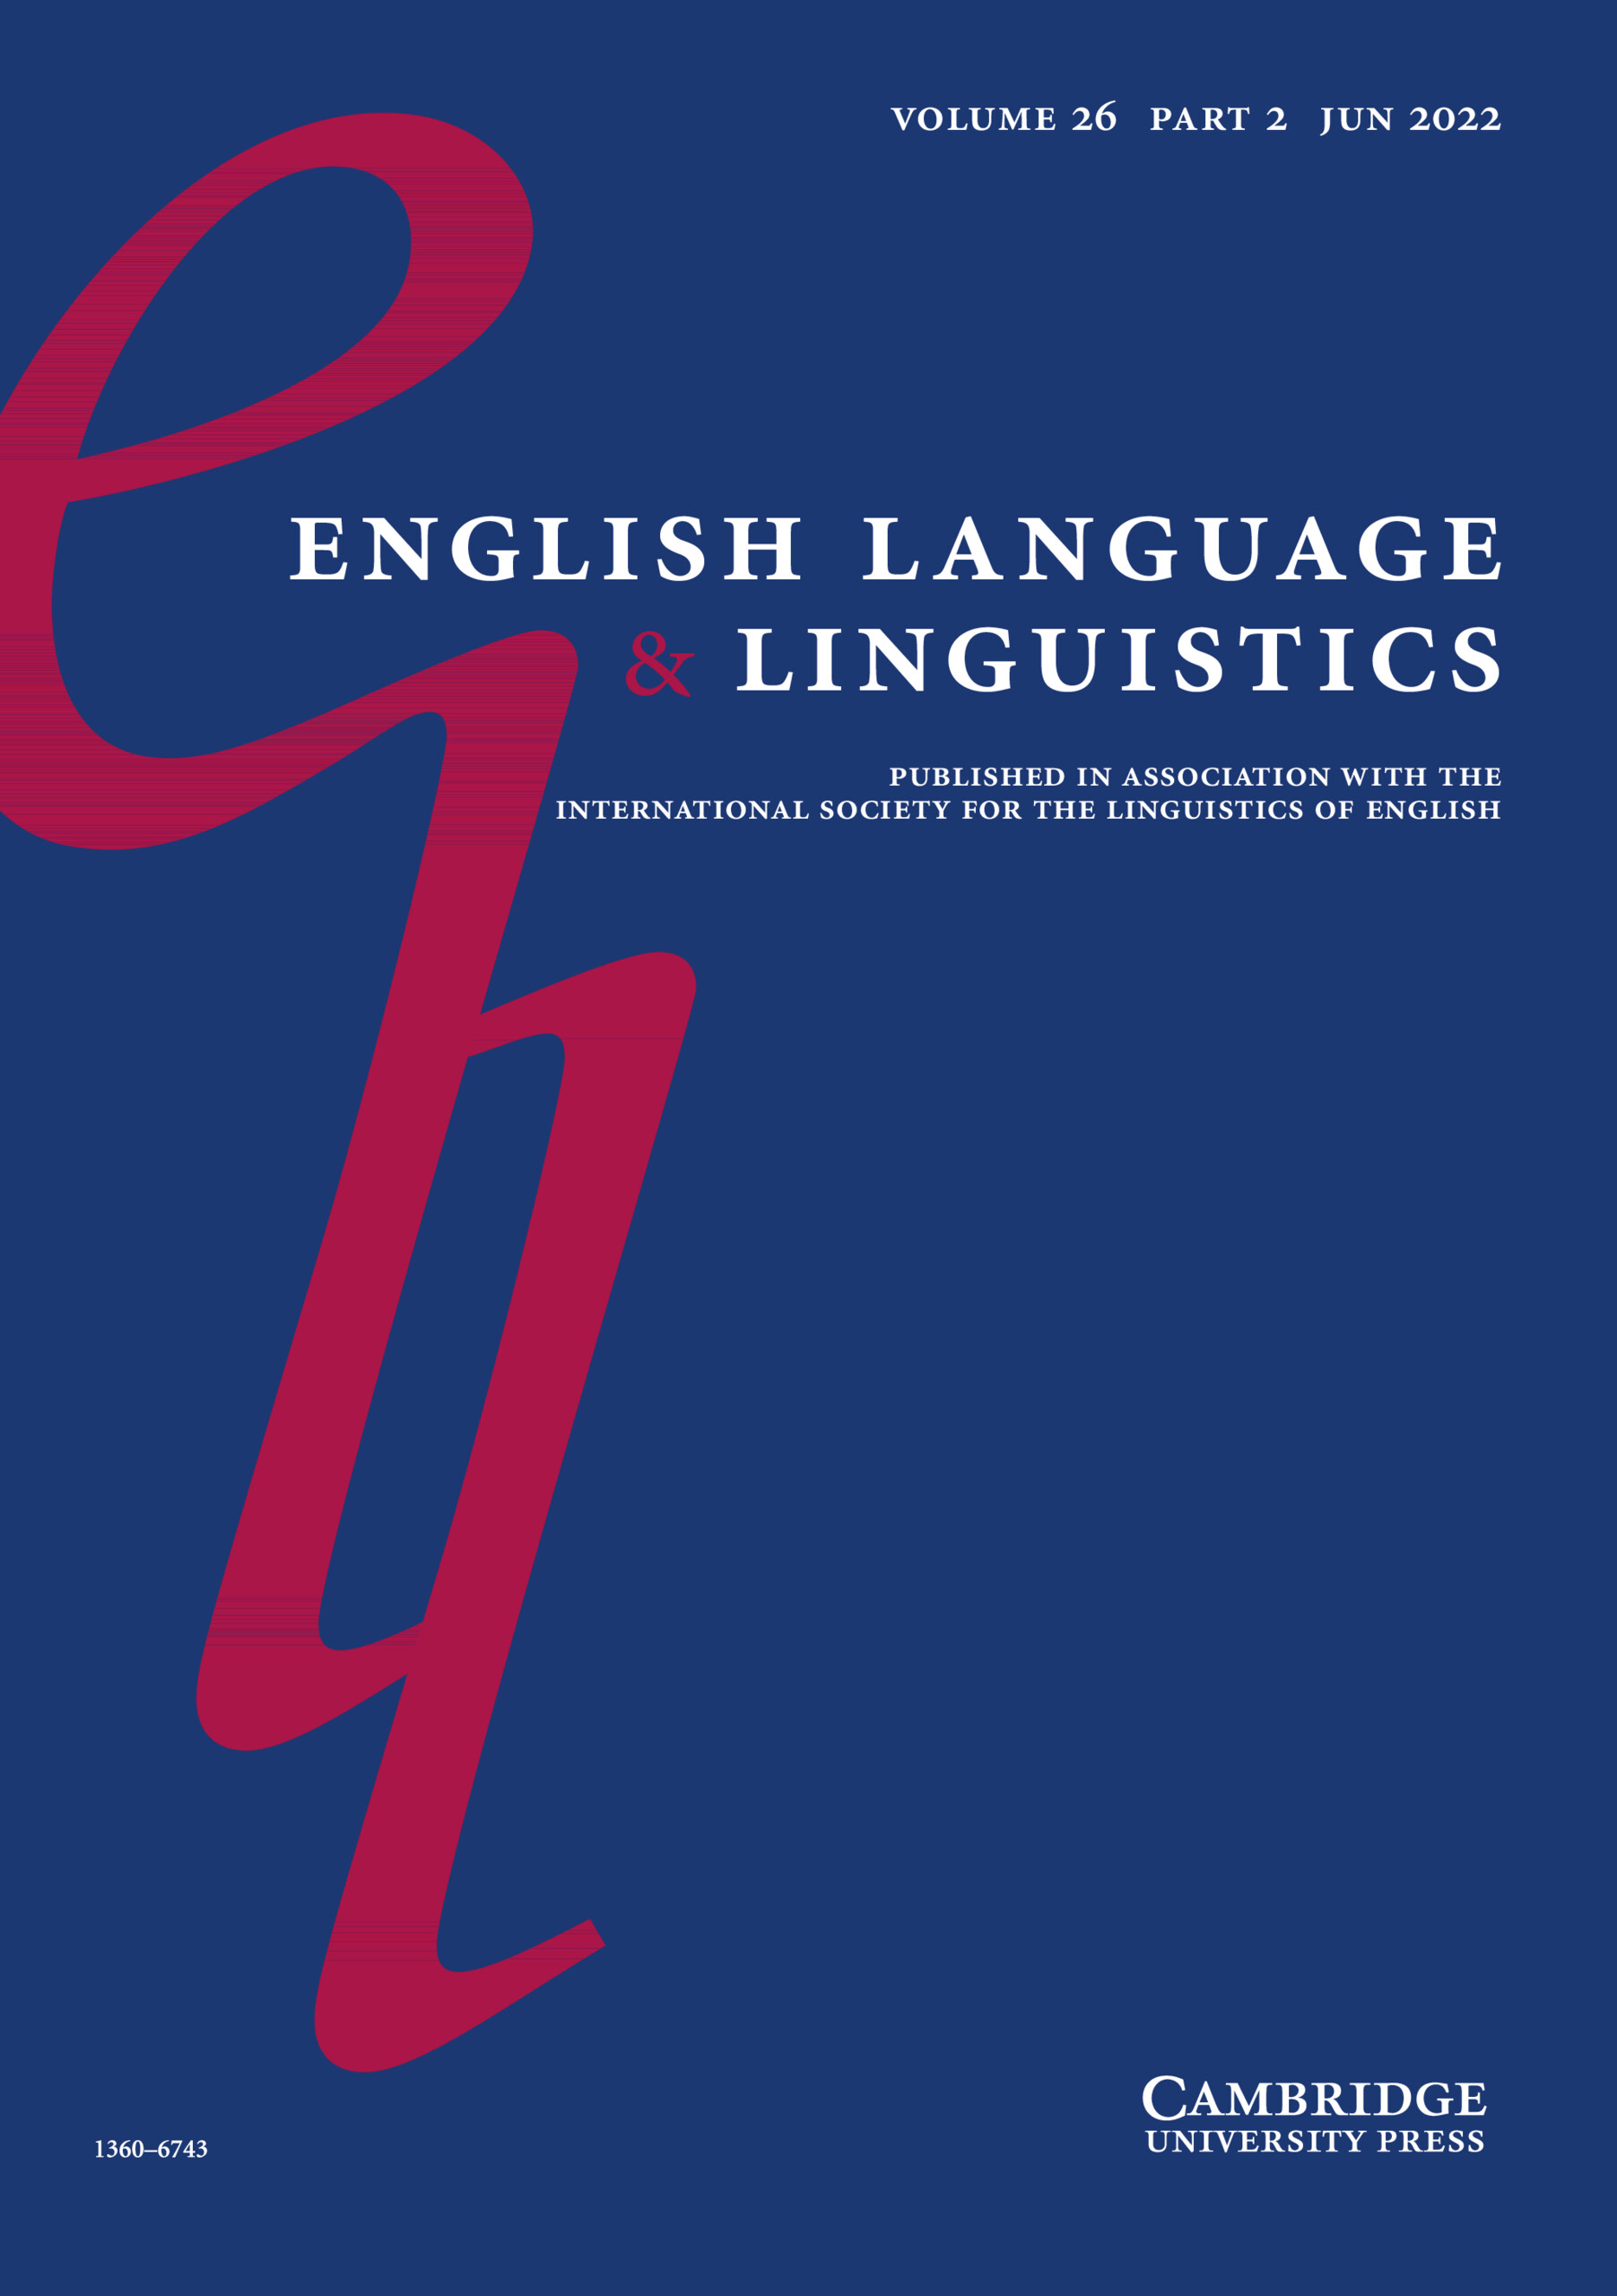 English Language & Linguistics | Cambridge Core